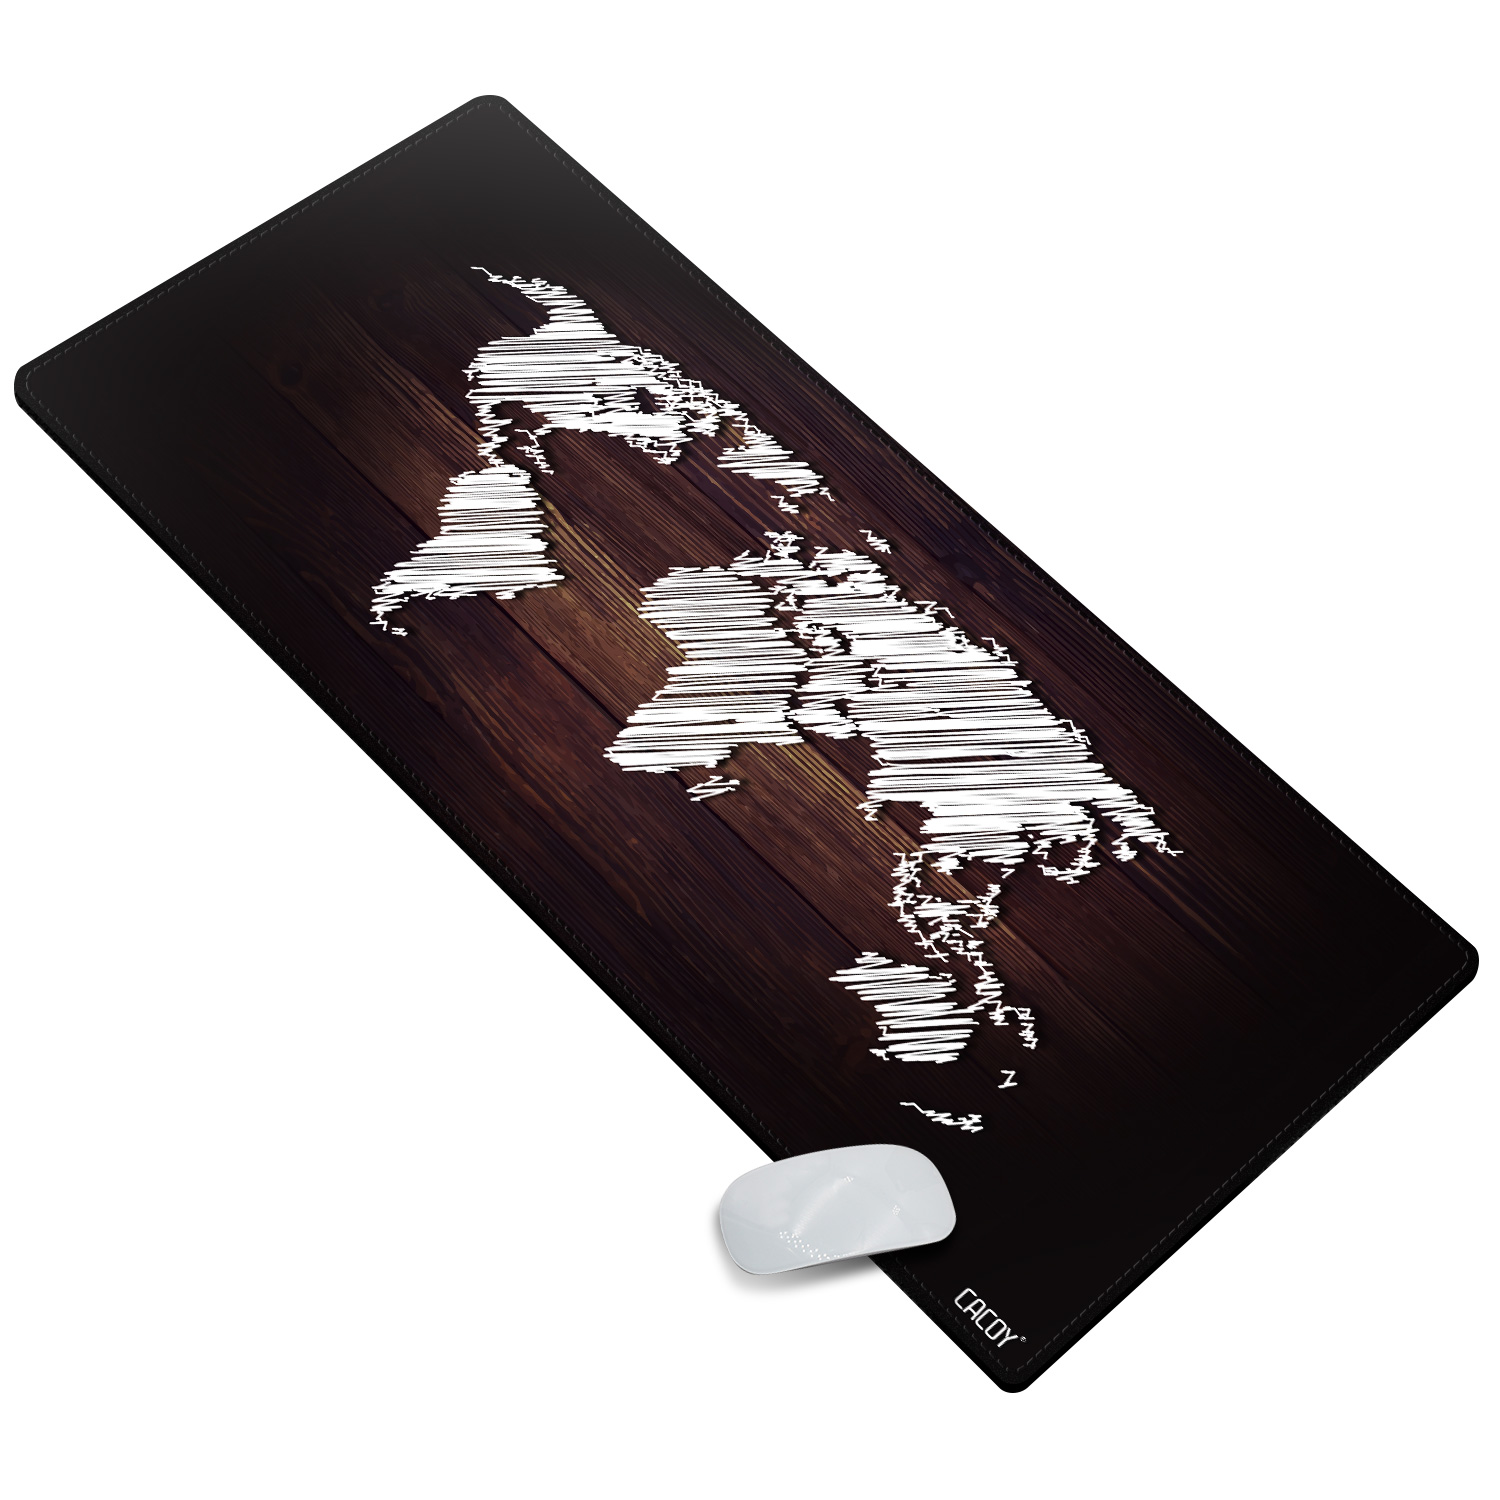 100x50cm World Map Extended Gaming Mouse Pad